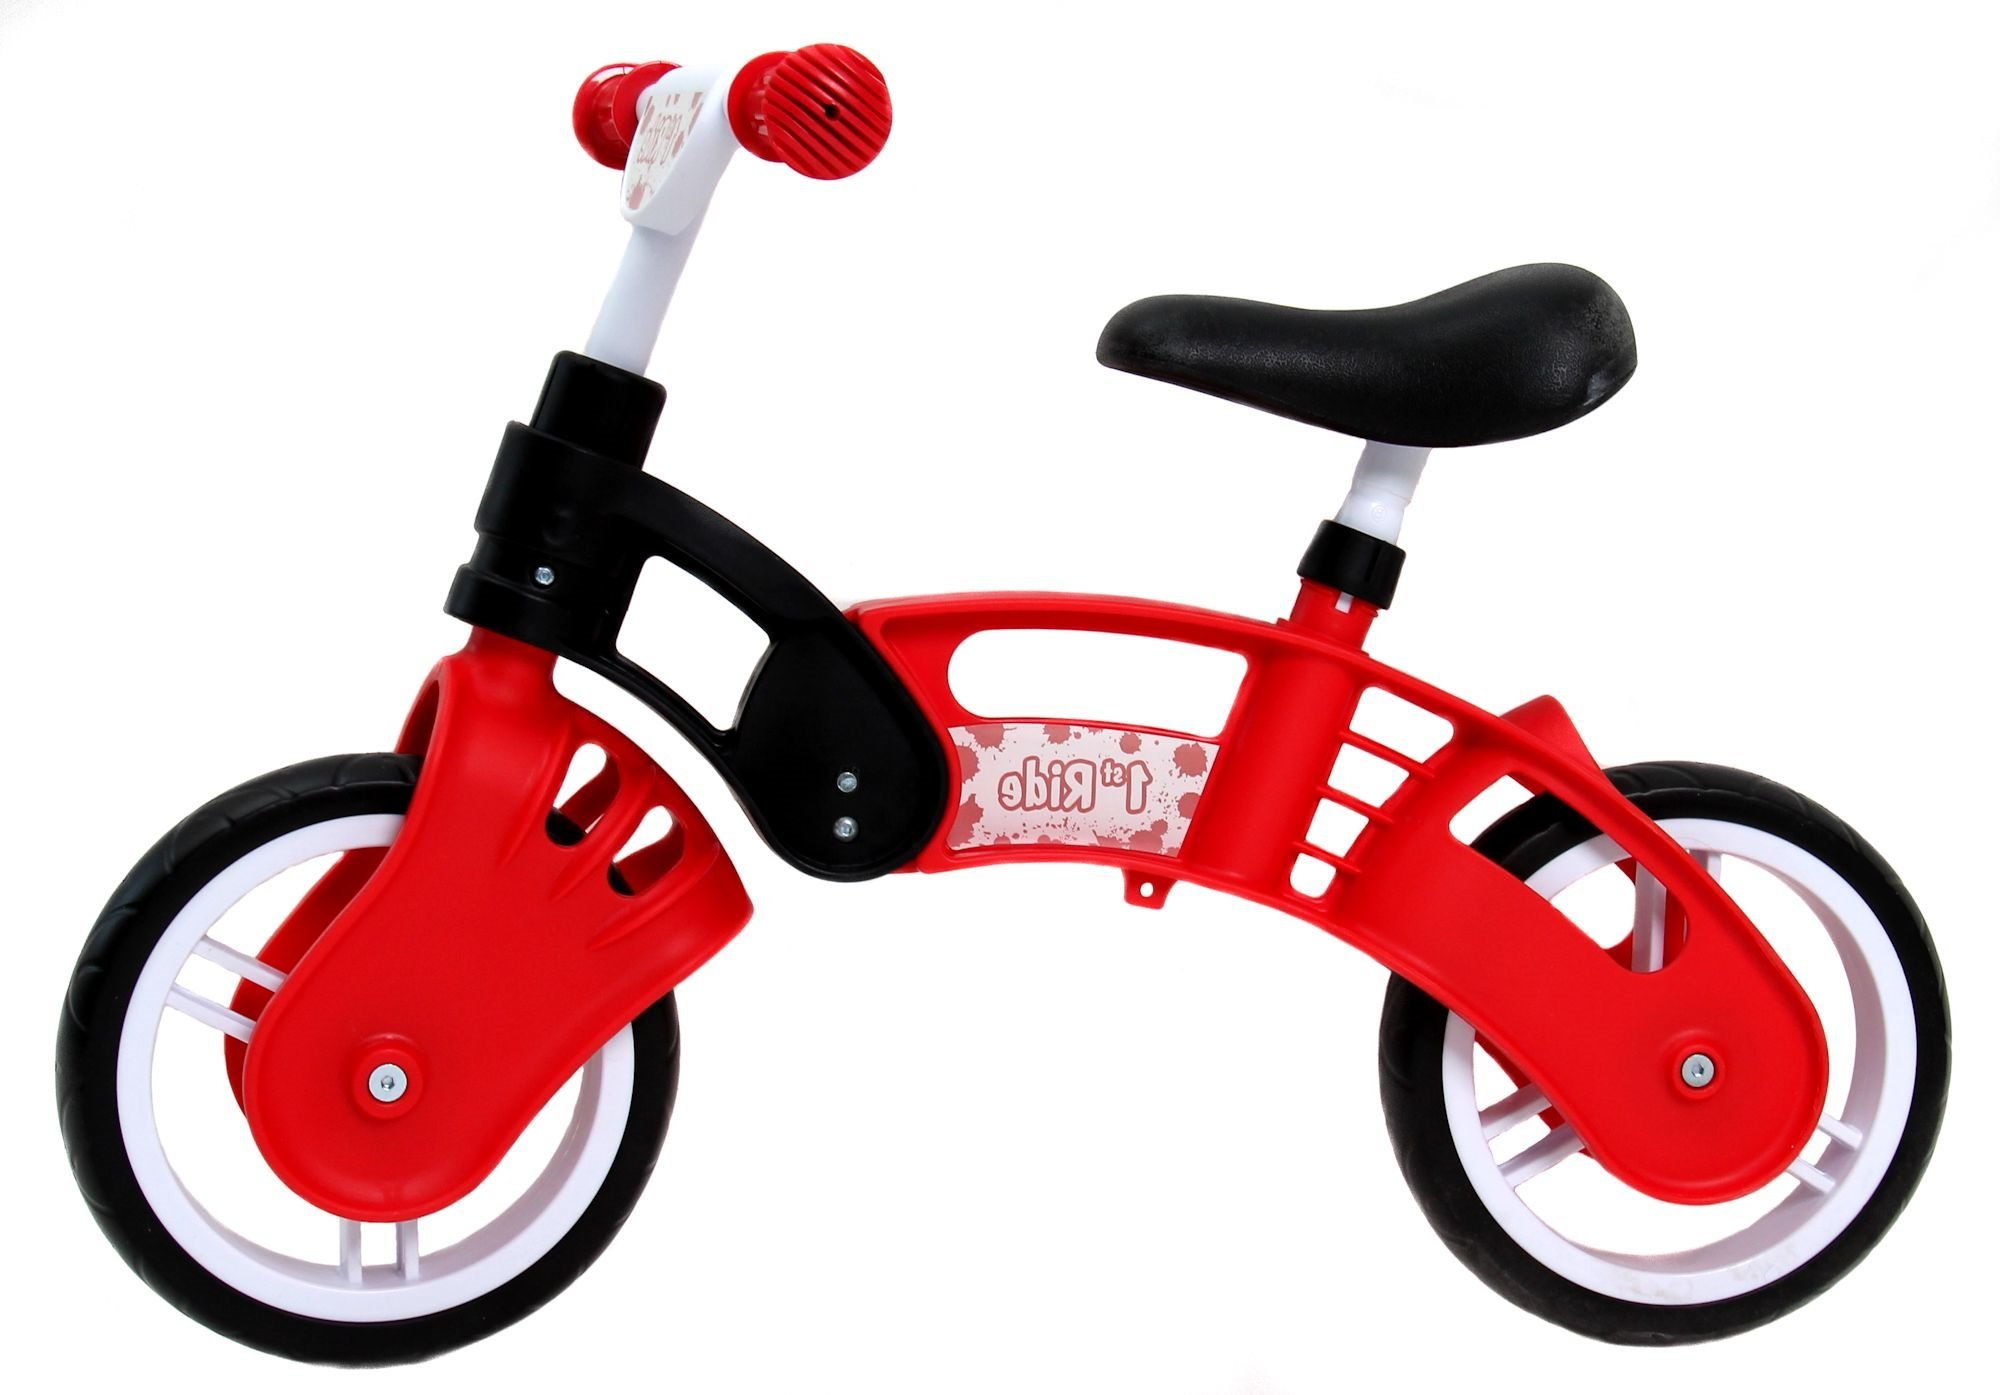 1st Ride Red Toddler Training No Pedal Balance Bike - 18 months to 3 years